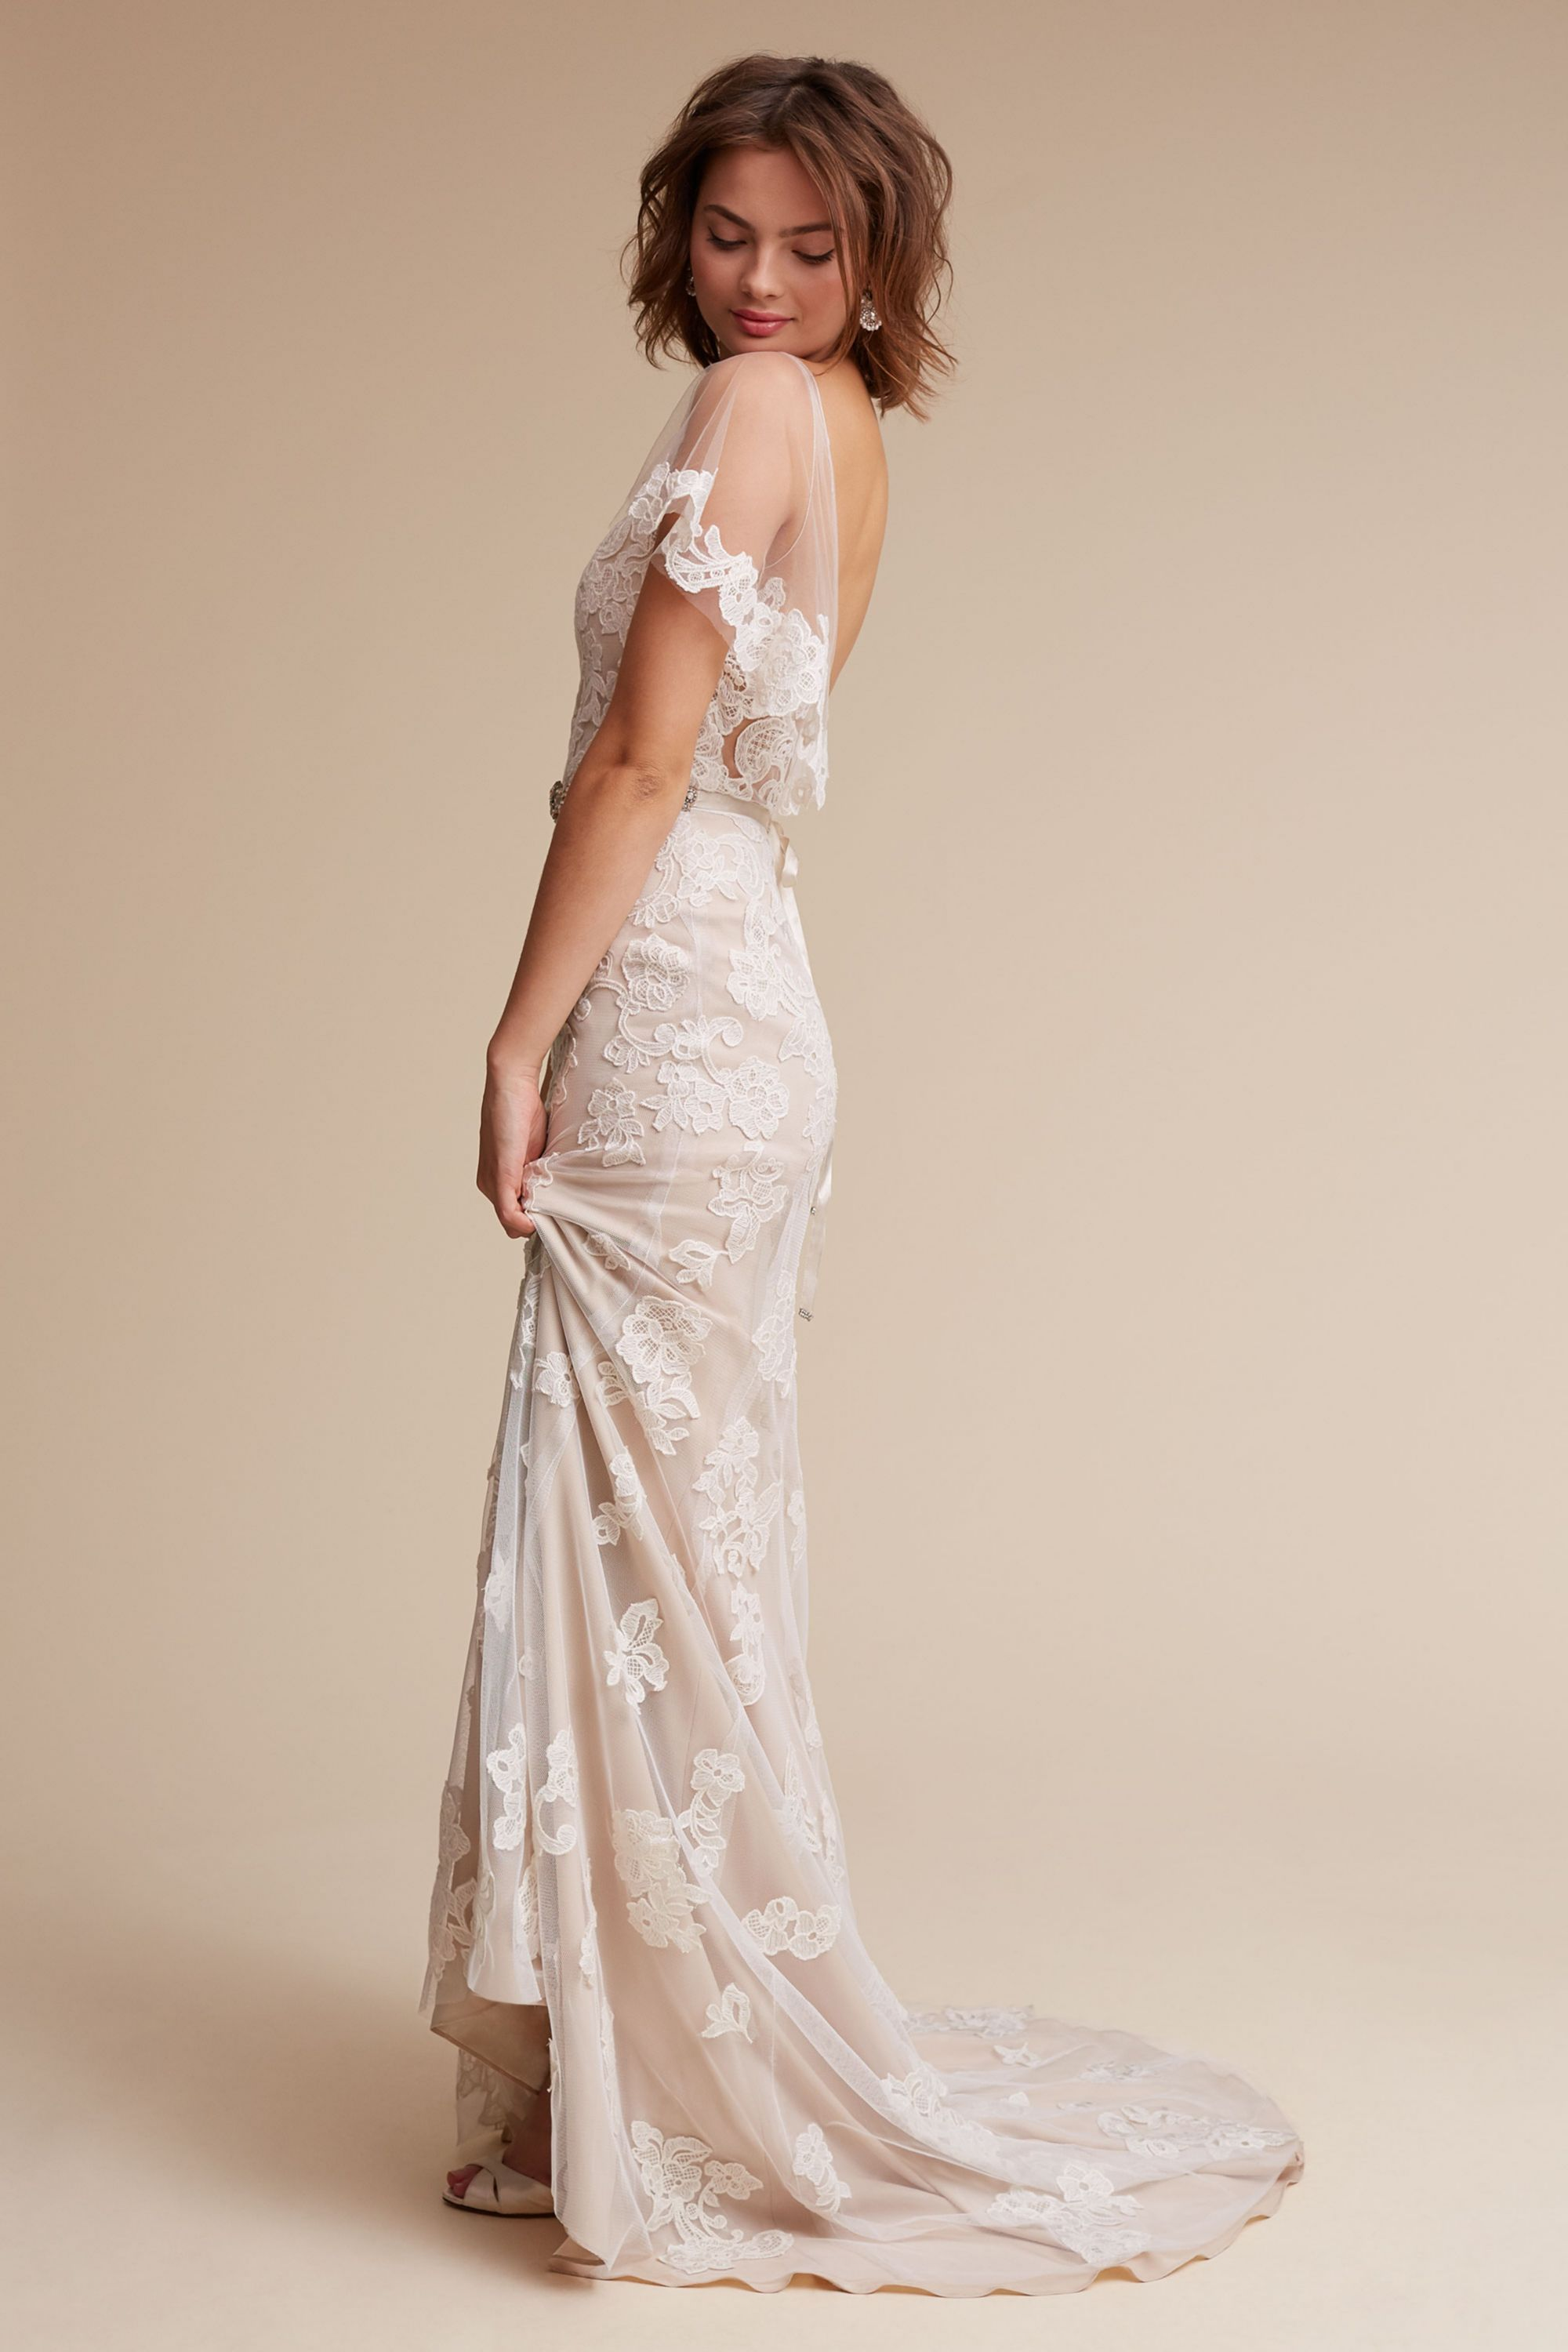 Wedding Wedding Dresses With Sleeves wedding dresses with sleeves long lace cap sleeve bhldn sierra gown gown